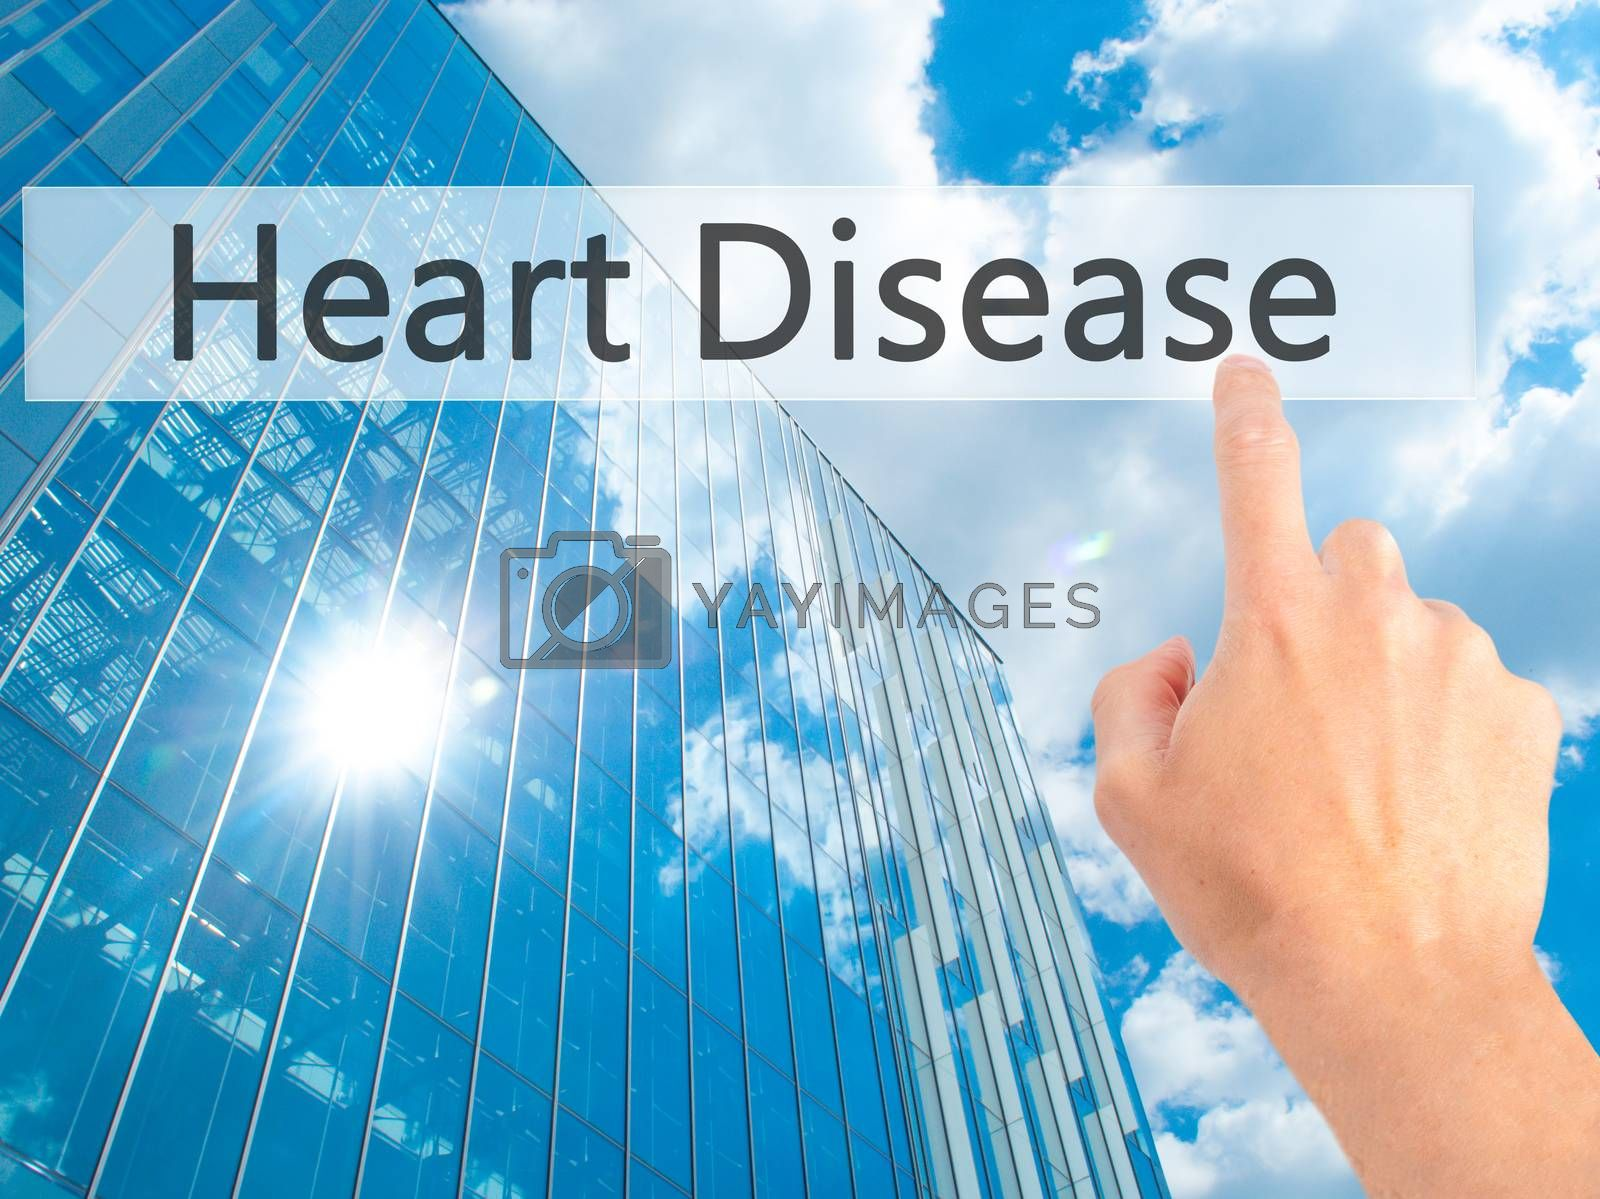 Heart Disease - Hand pressing a button on blurred background con by jackald